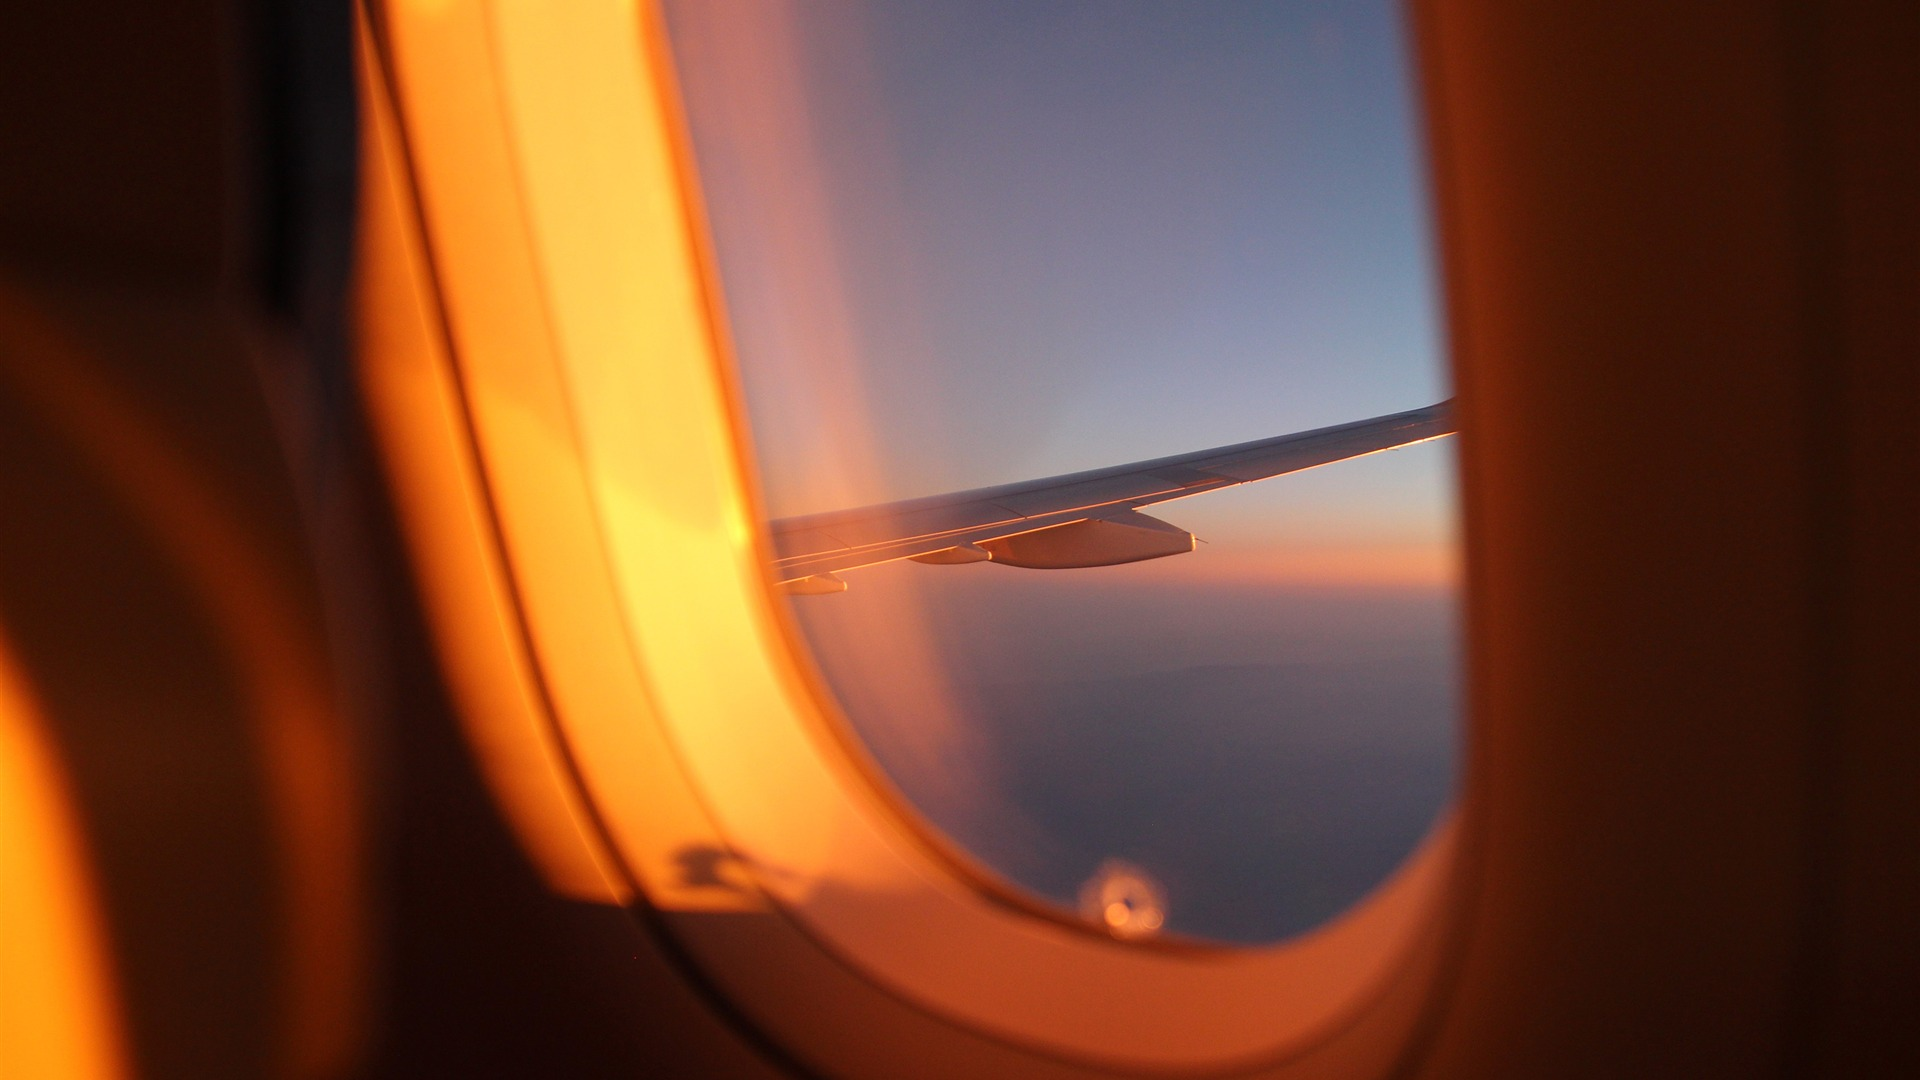 Airplane window outside sunset view 4K HD - 1920x1080 wallpaper download